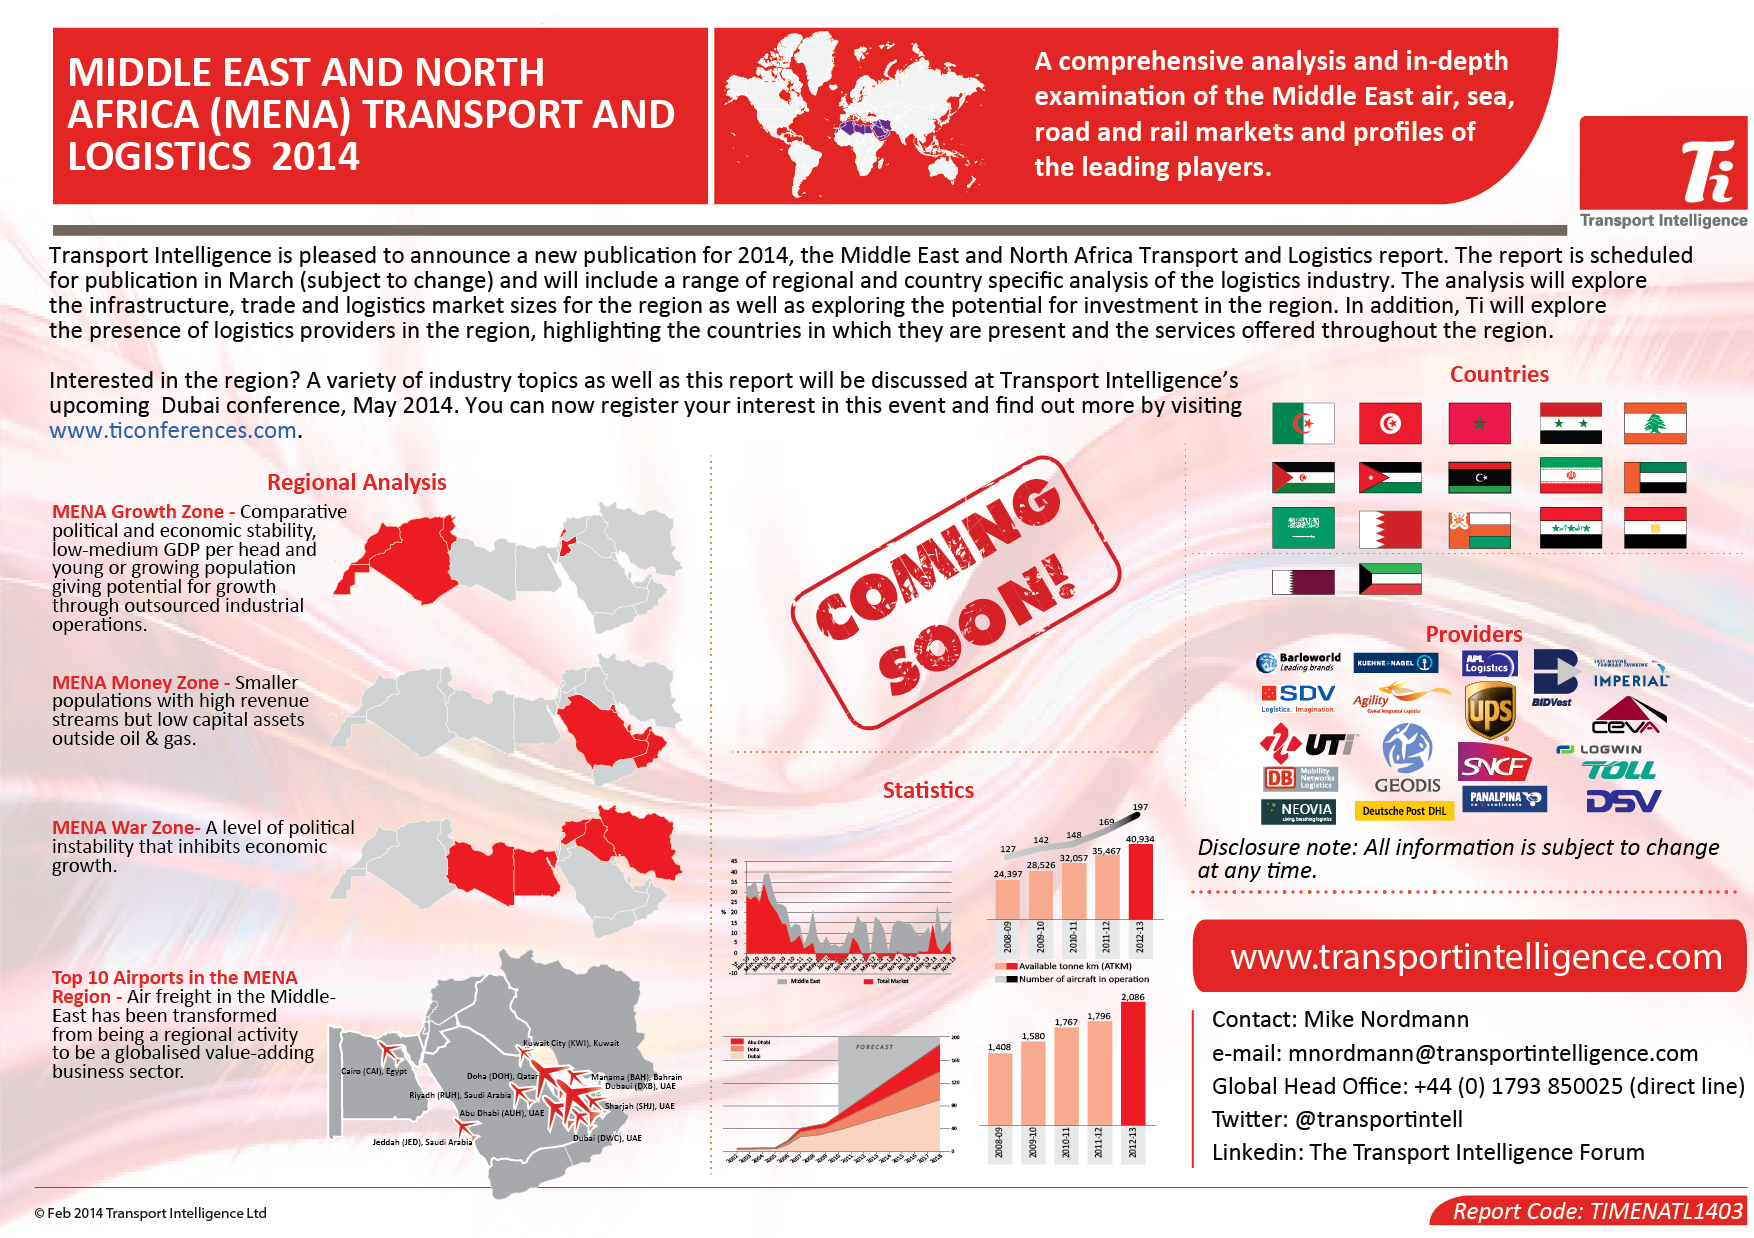 Middle east north africa transport logistics the ti blog click to view full size sciox Image collections